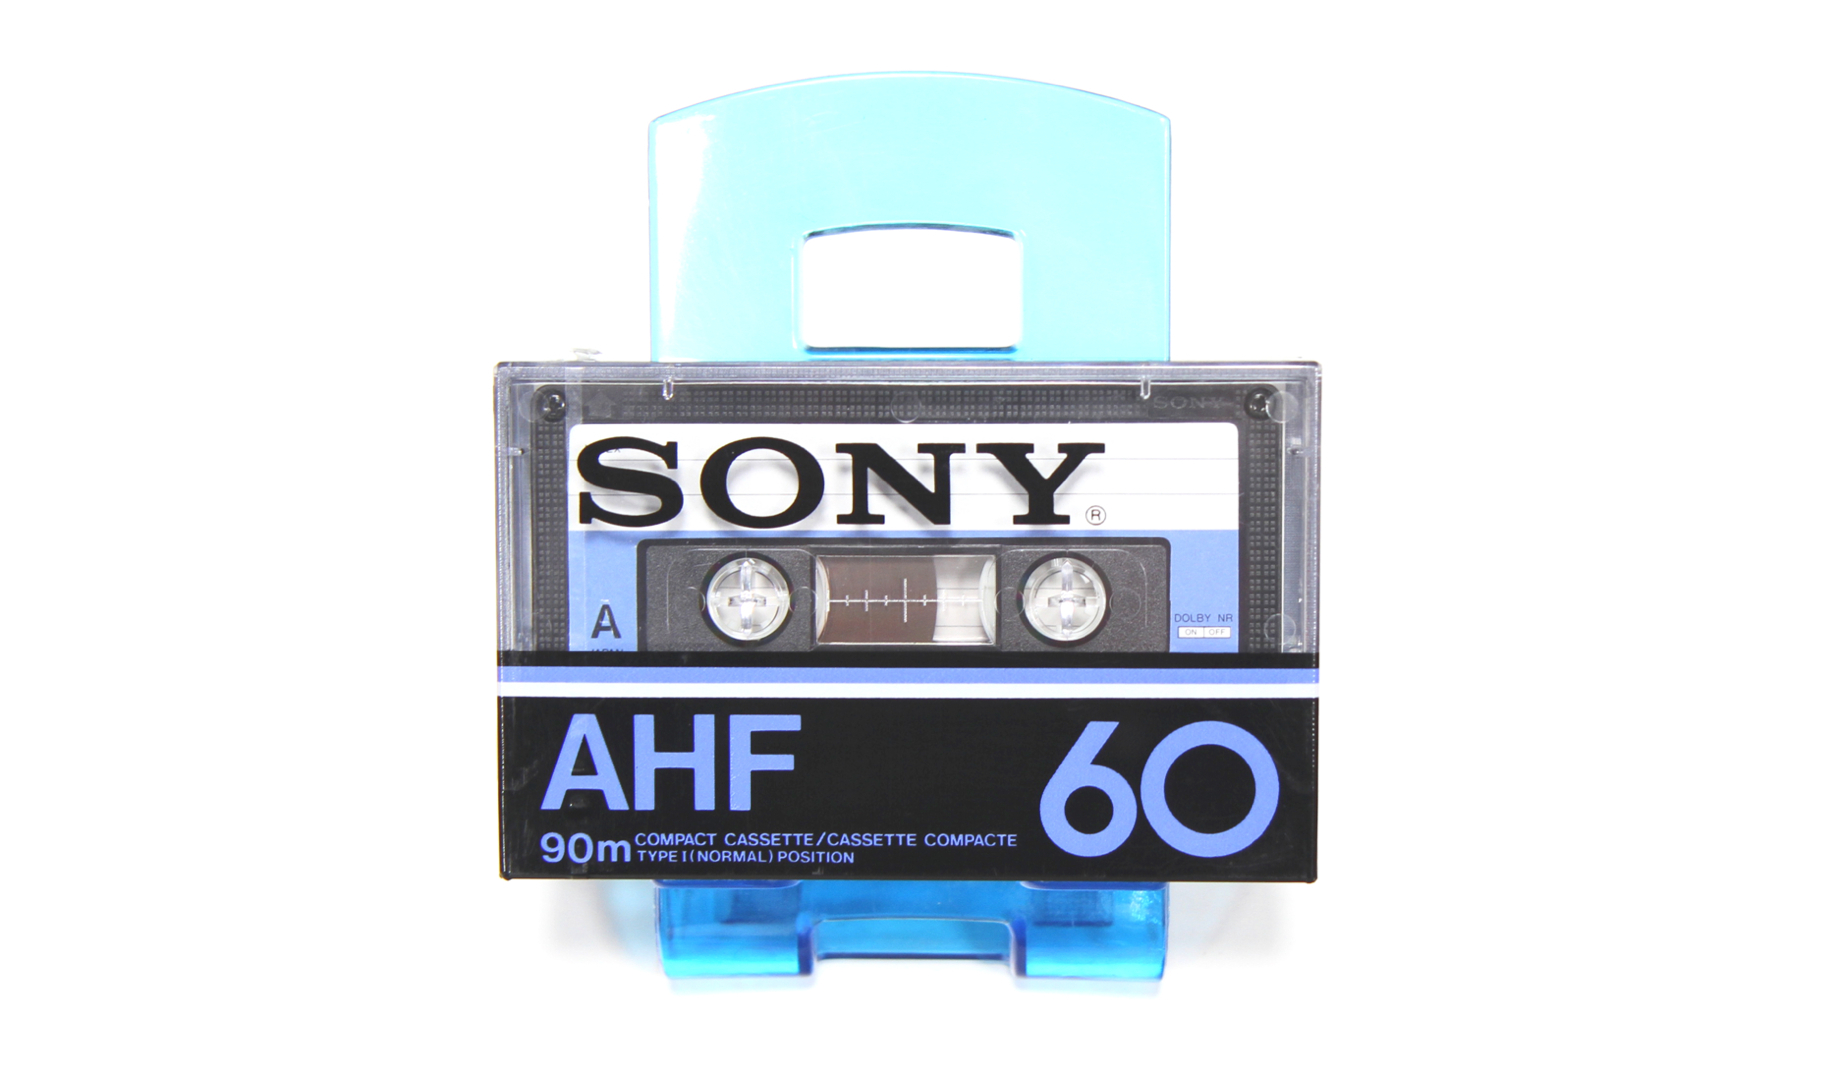 SONY AHF-60 Position Normal